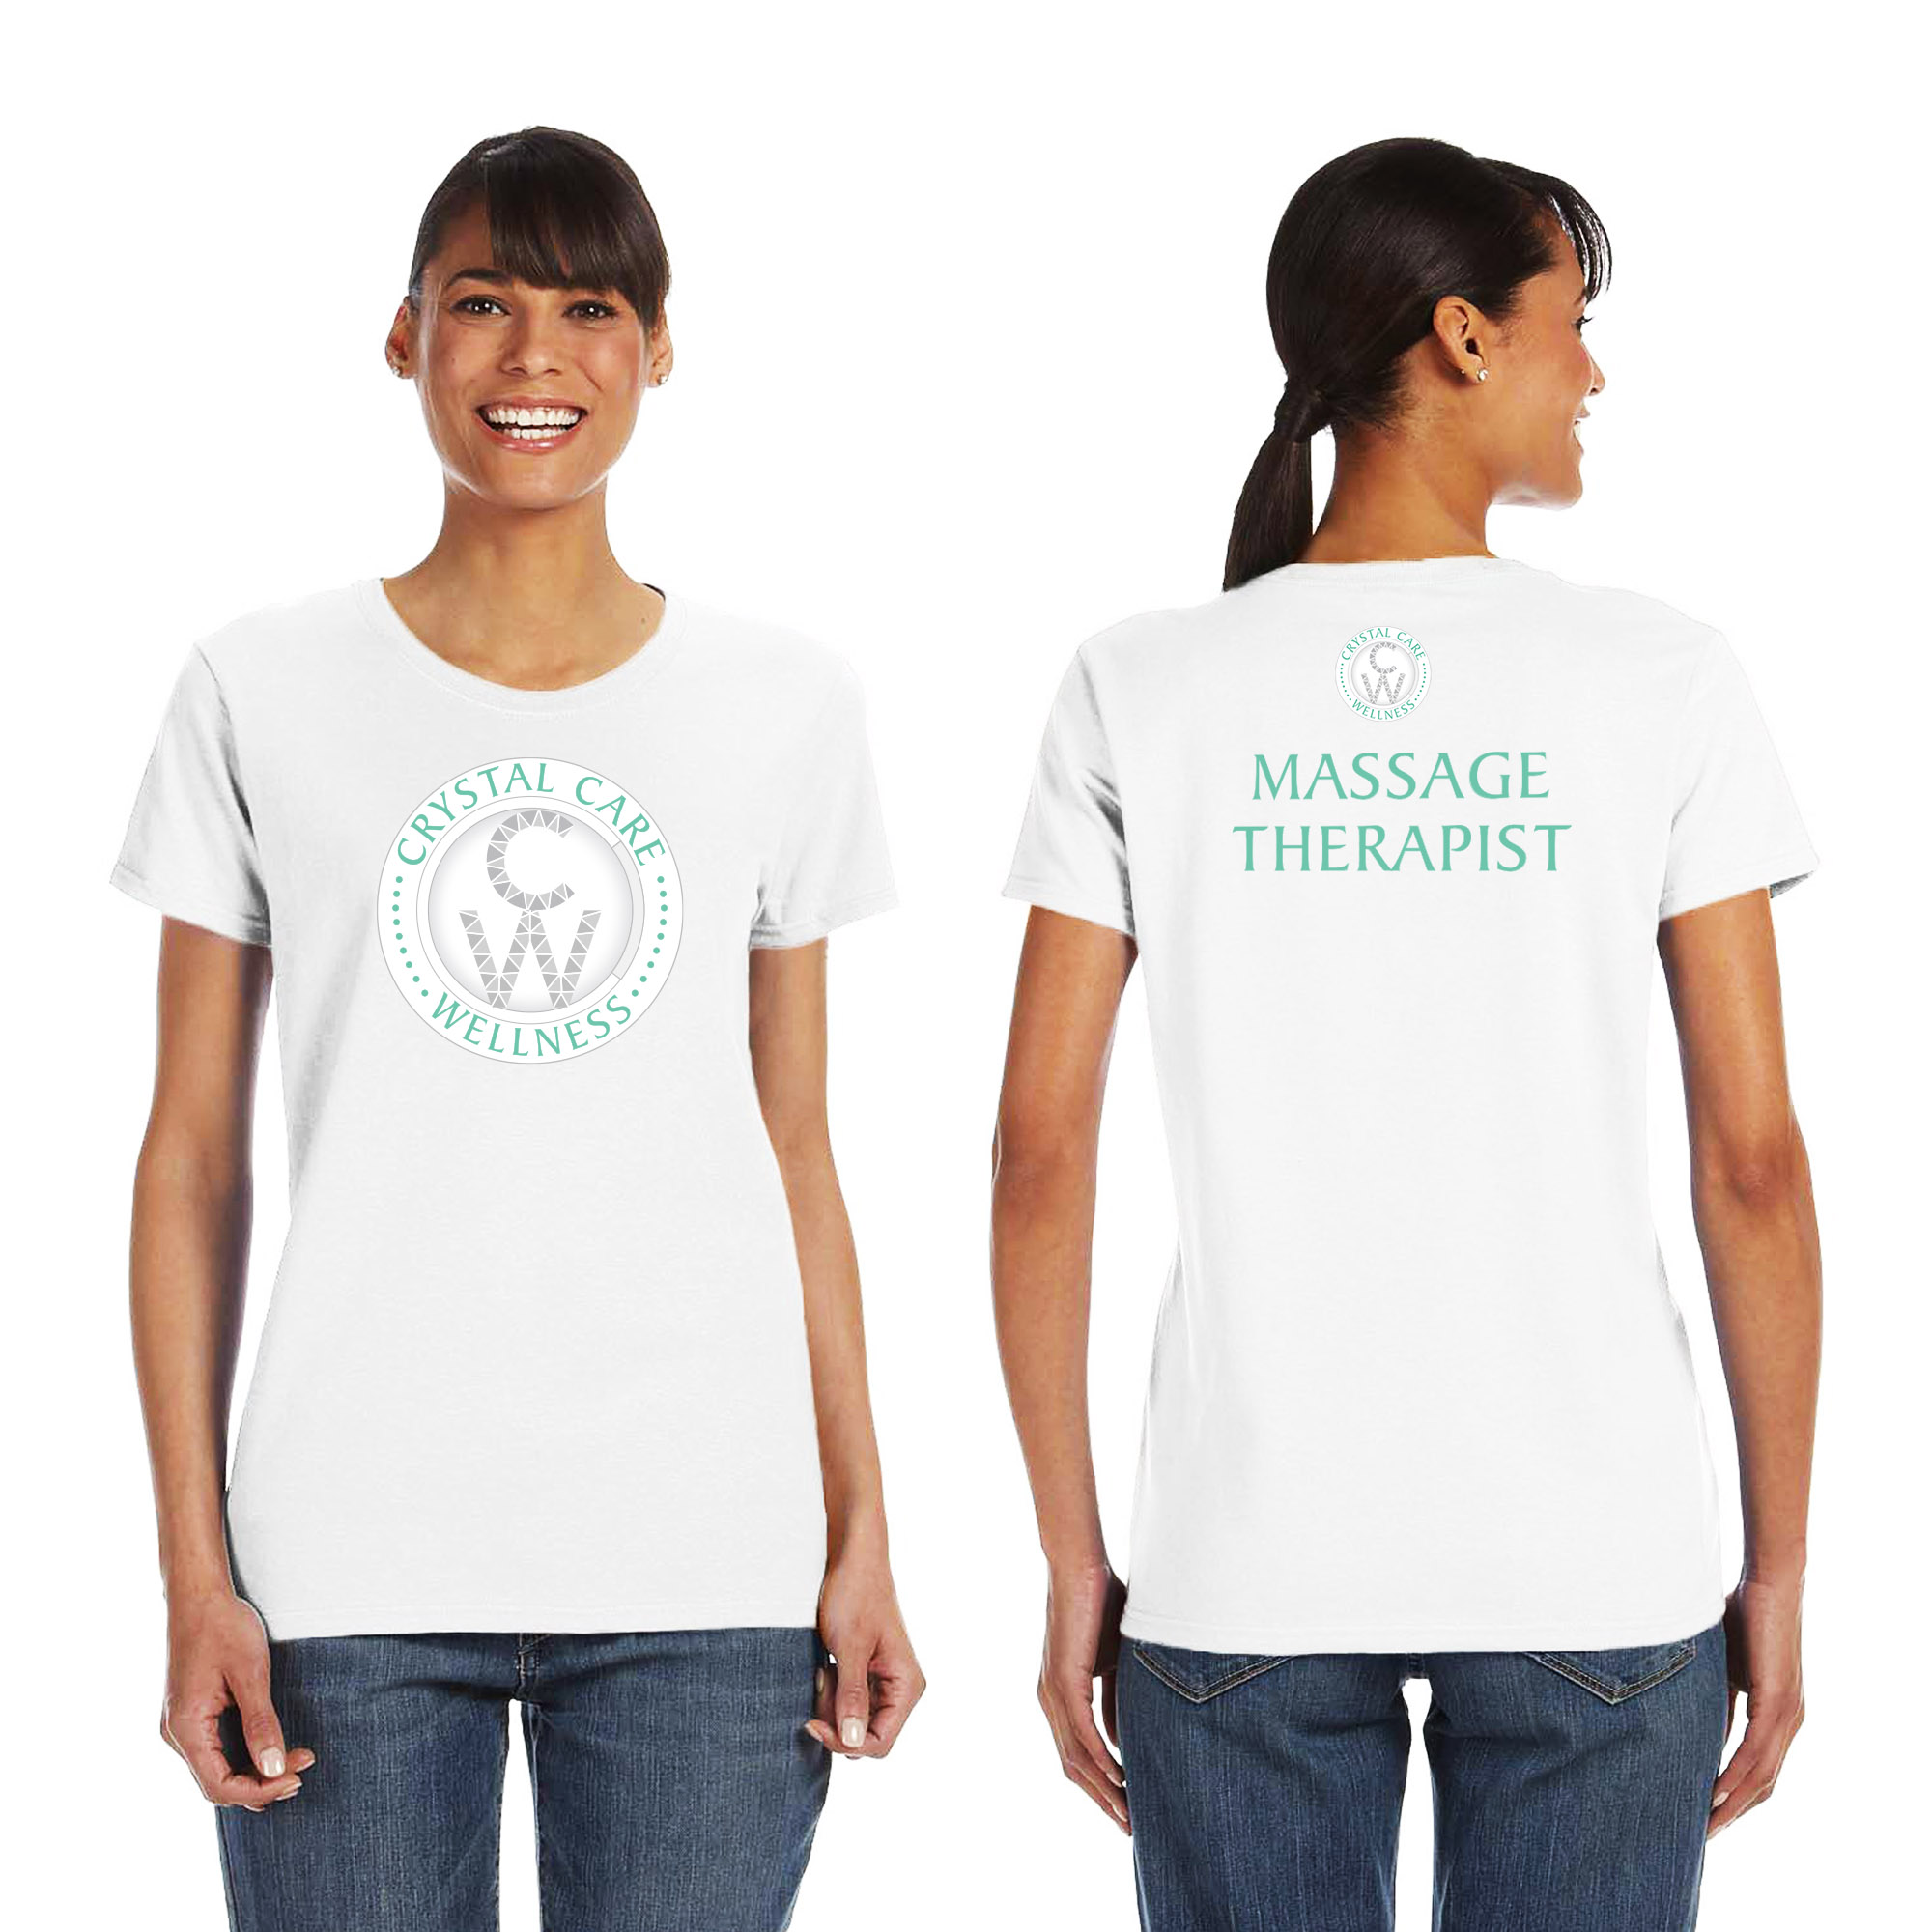 Crystal Care Wellness - Adult T-Shirts